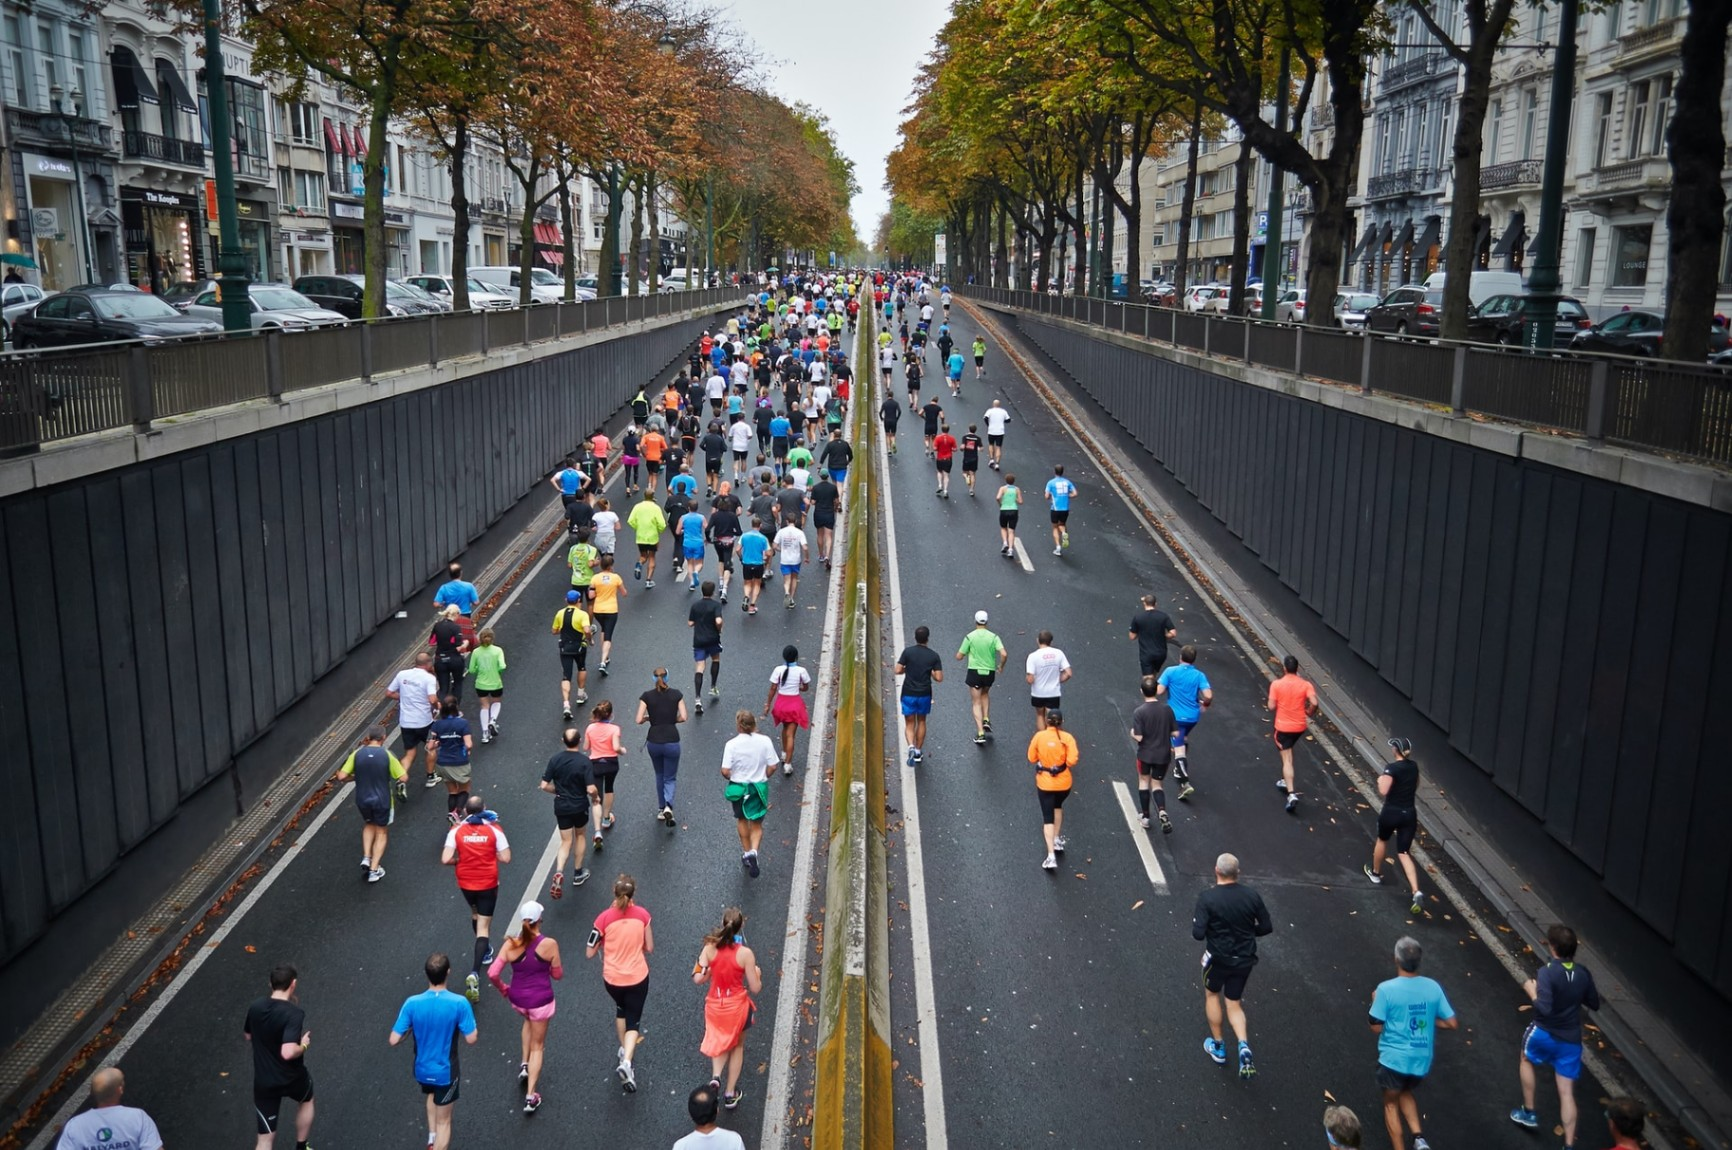 7 Tips for Those Running Their First Marathon